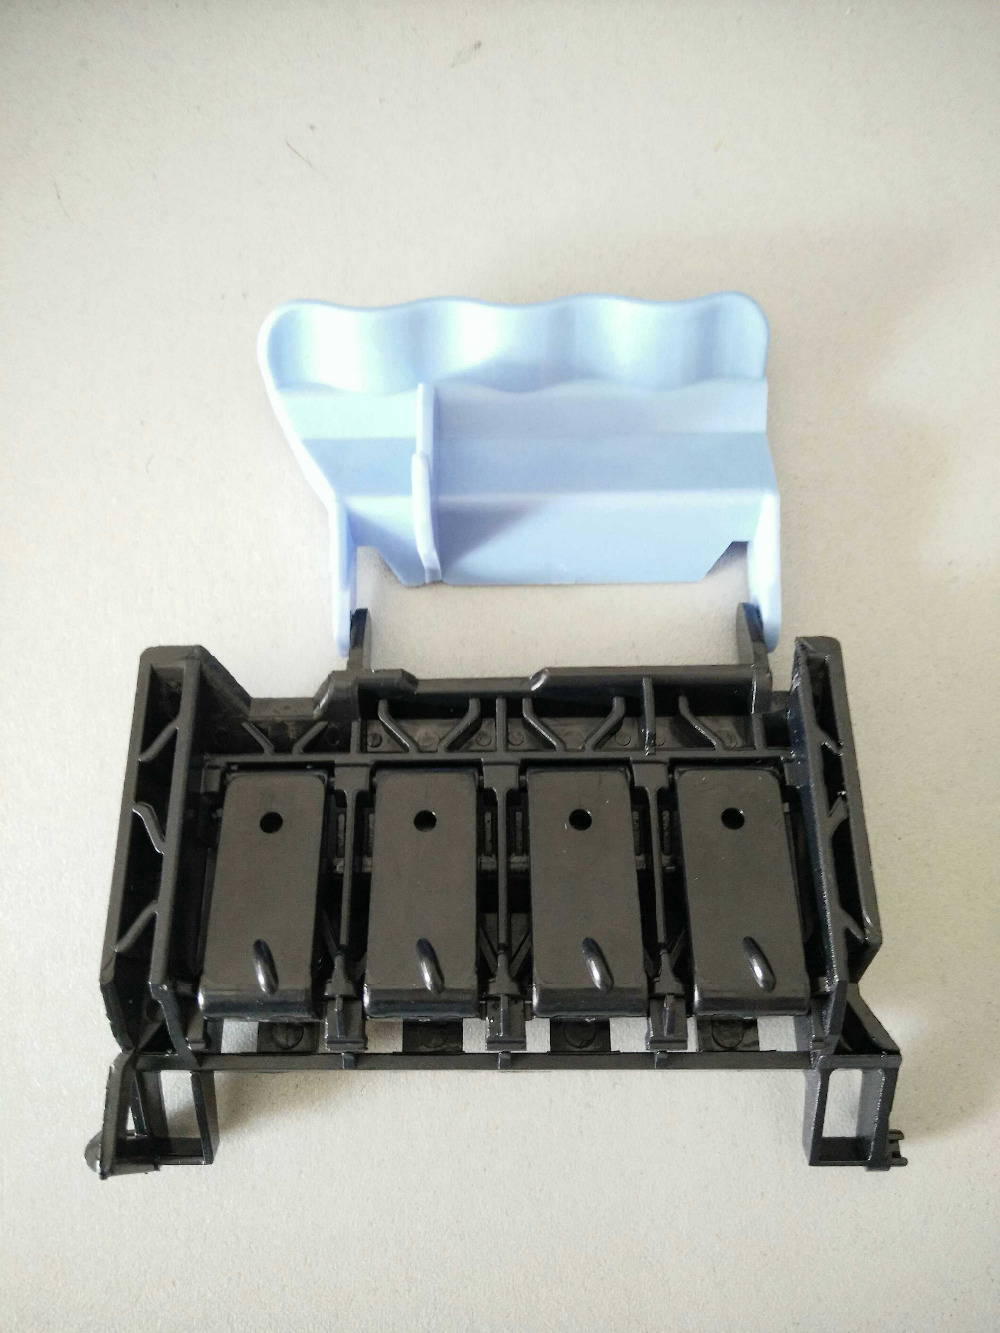 C7769-69376 Printhead Carriage Assembly Cover For HP Plotter 500 800 510 Printer Upper Head Cover rosenberg 7769